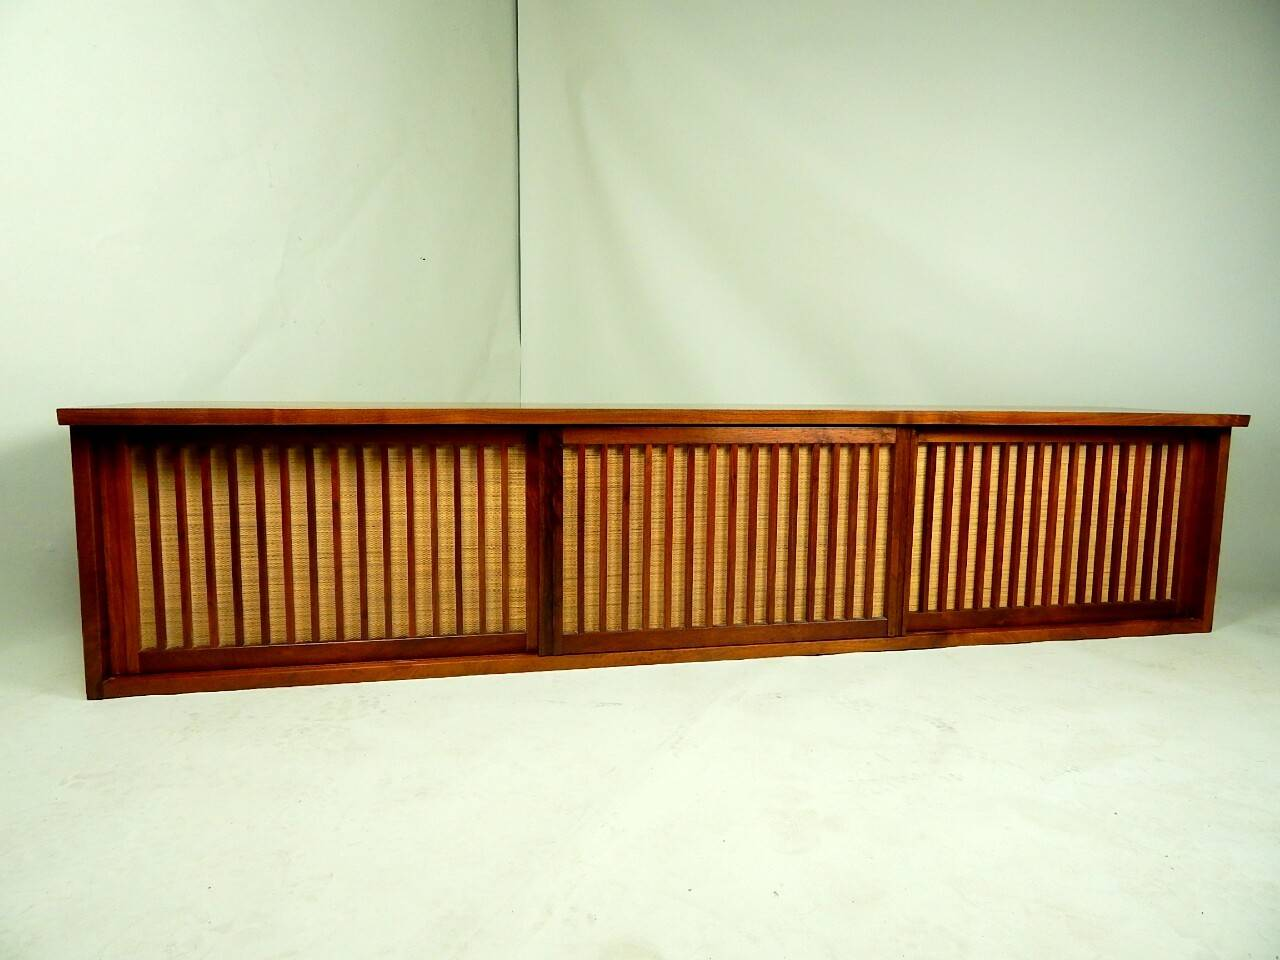 20th Century Walnut Wall Cabinet by George Nakashima In Excellent Condition For Sale In Sea Cliff, NY